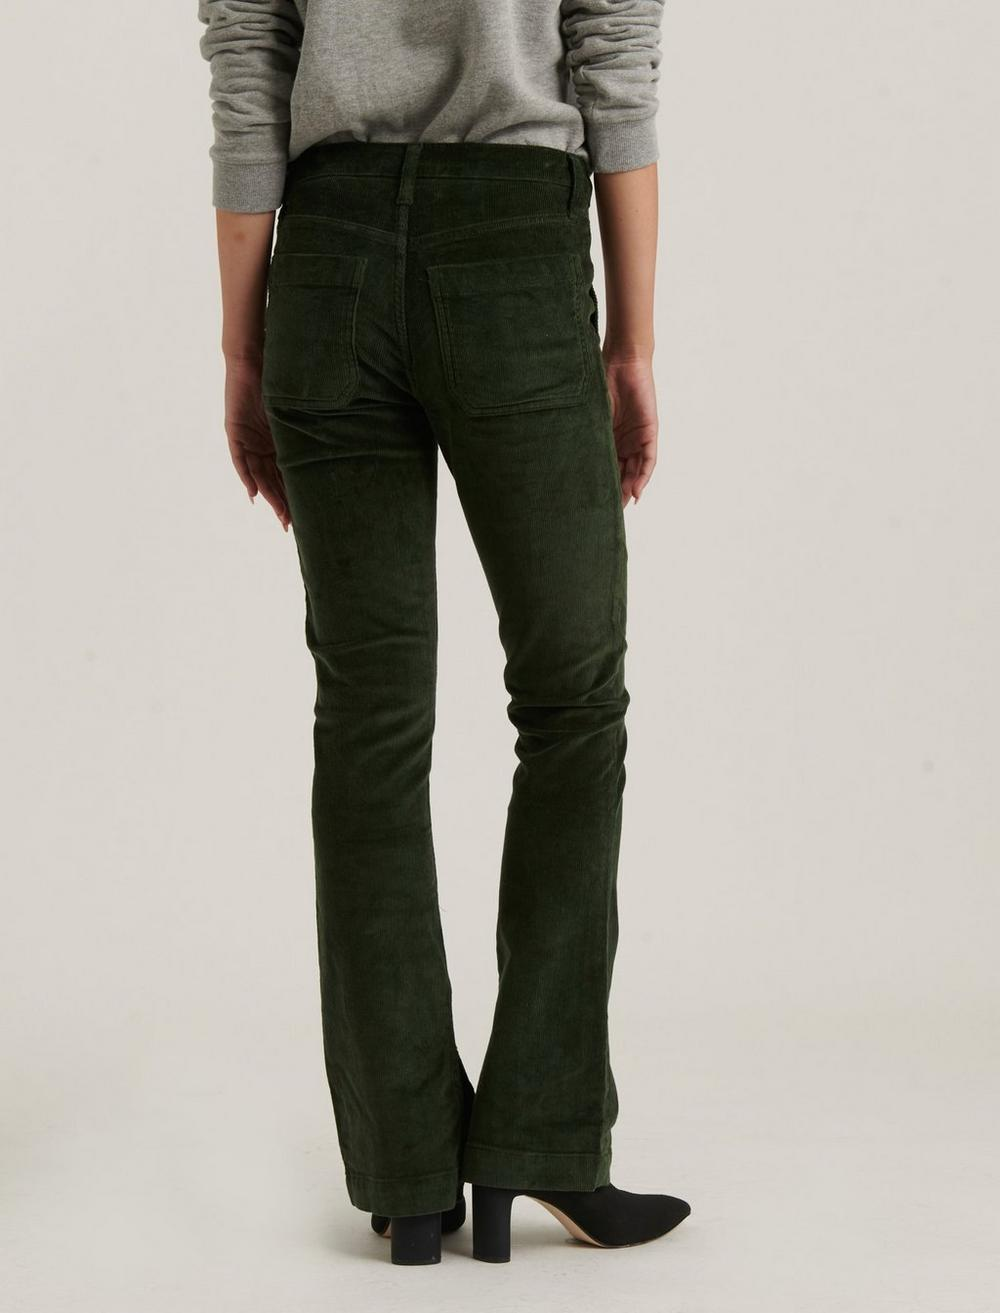 MID RISE AVA BOOT JEAN, image 4